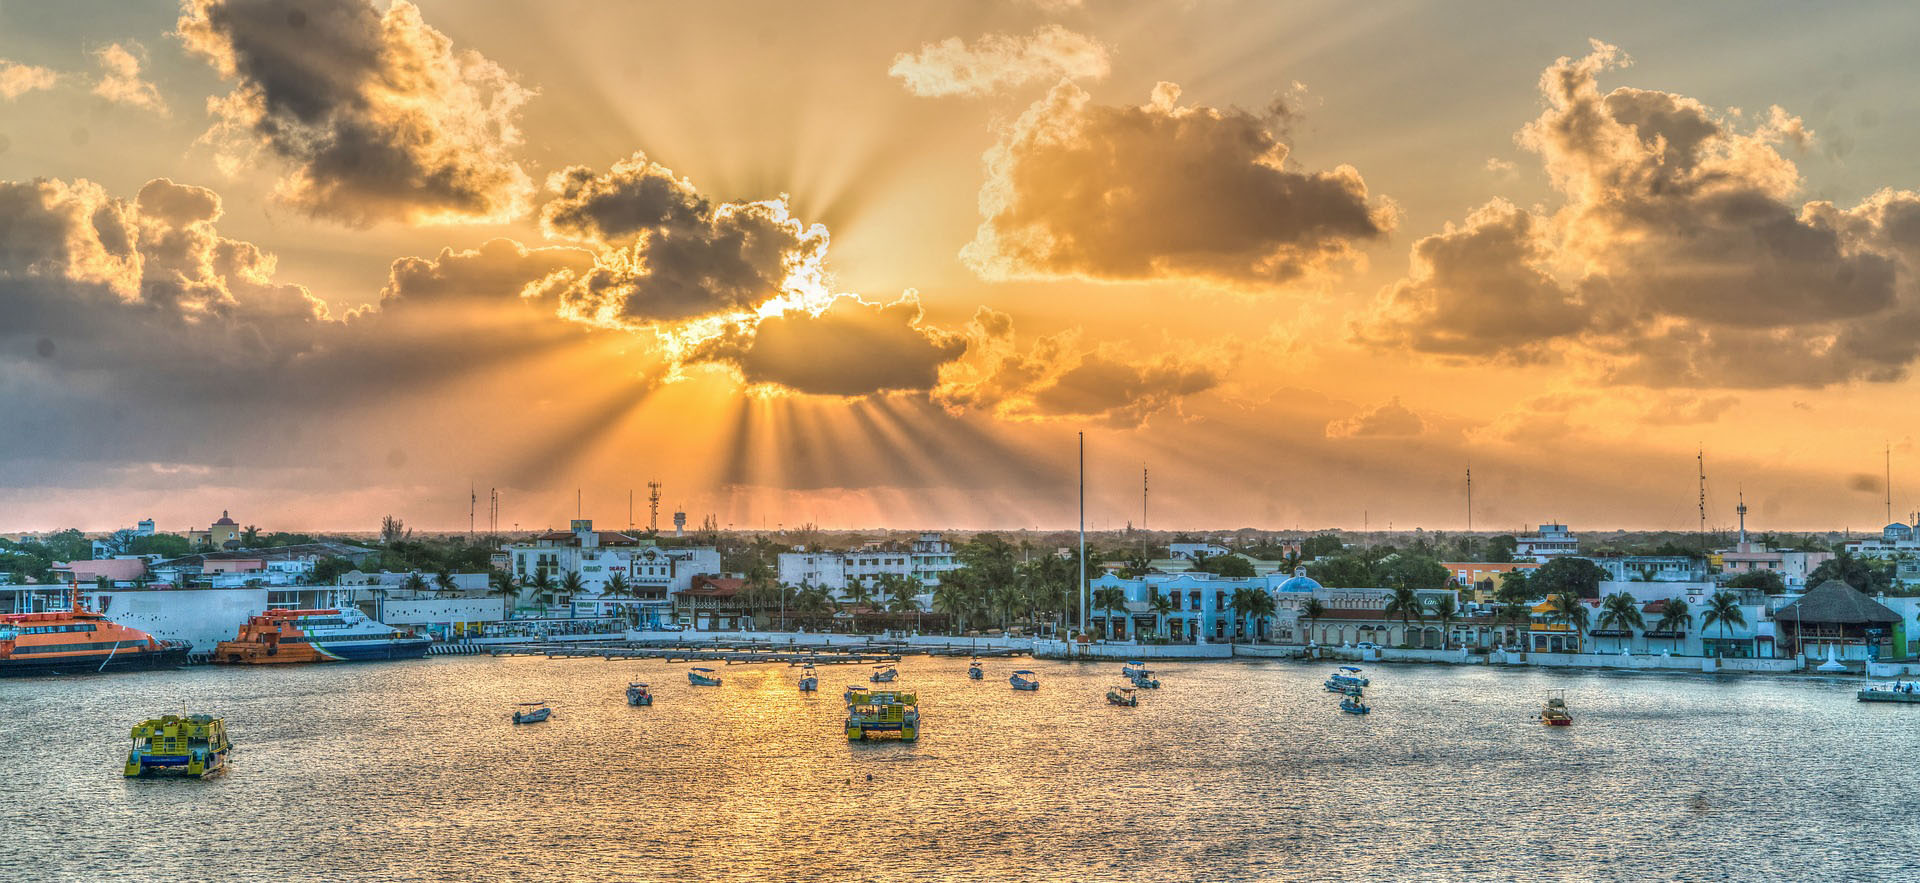 Sunrise over Cozumel, Mexico. Photographer Maria Michelle